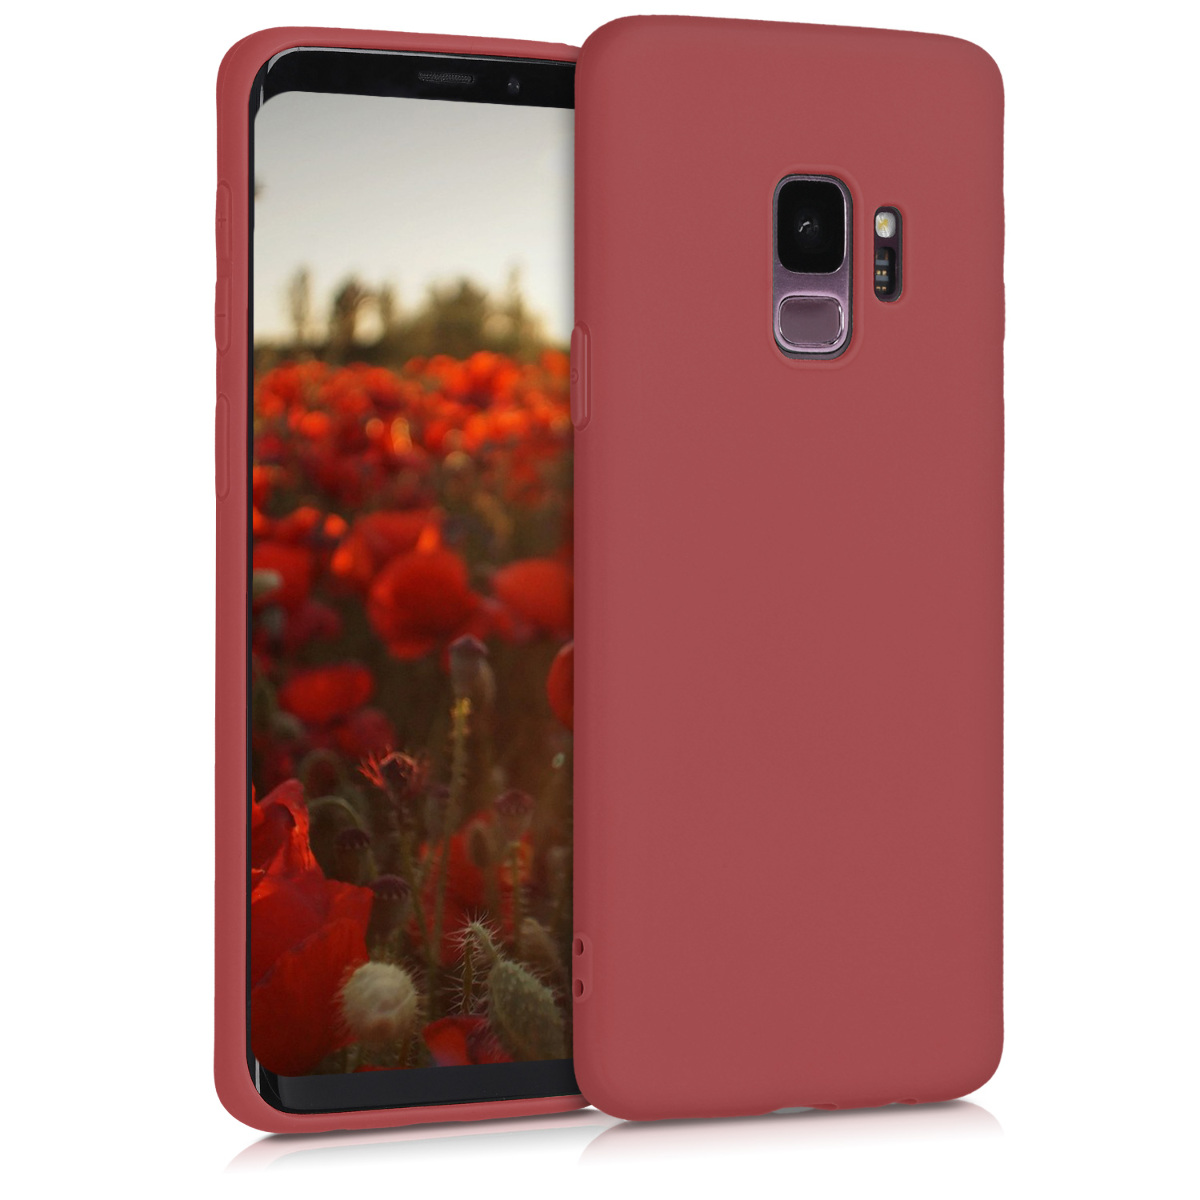 TPU Silikonové pouzdro pro Samsung Galaxy S9 - Soft Flexible Protective Phone Cover - Maroon Red